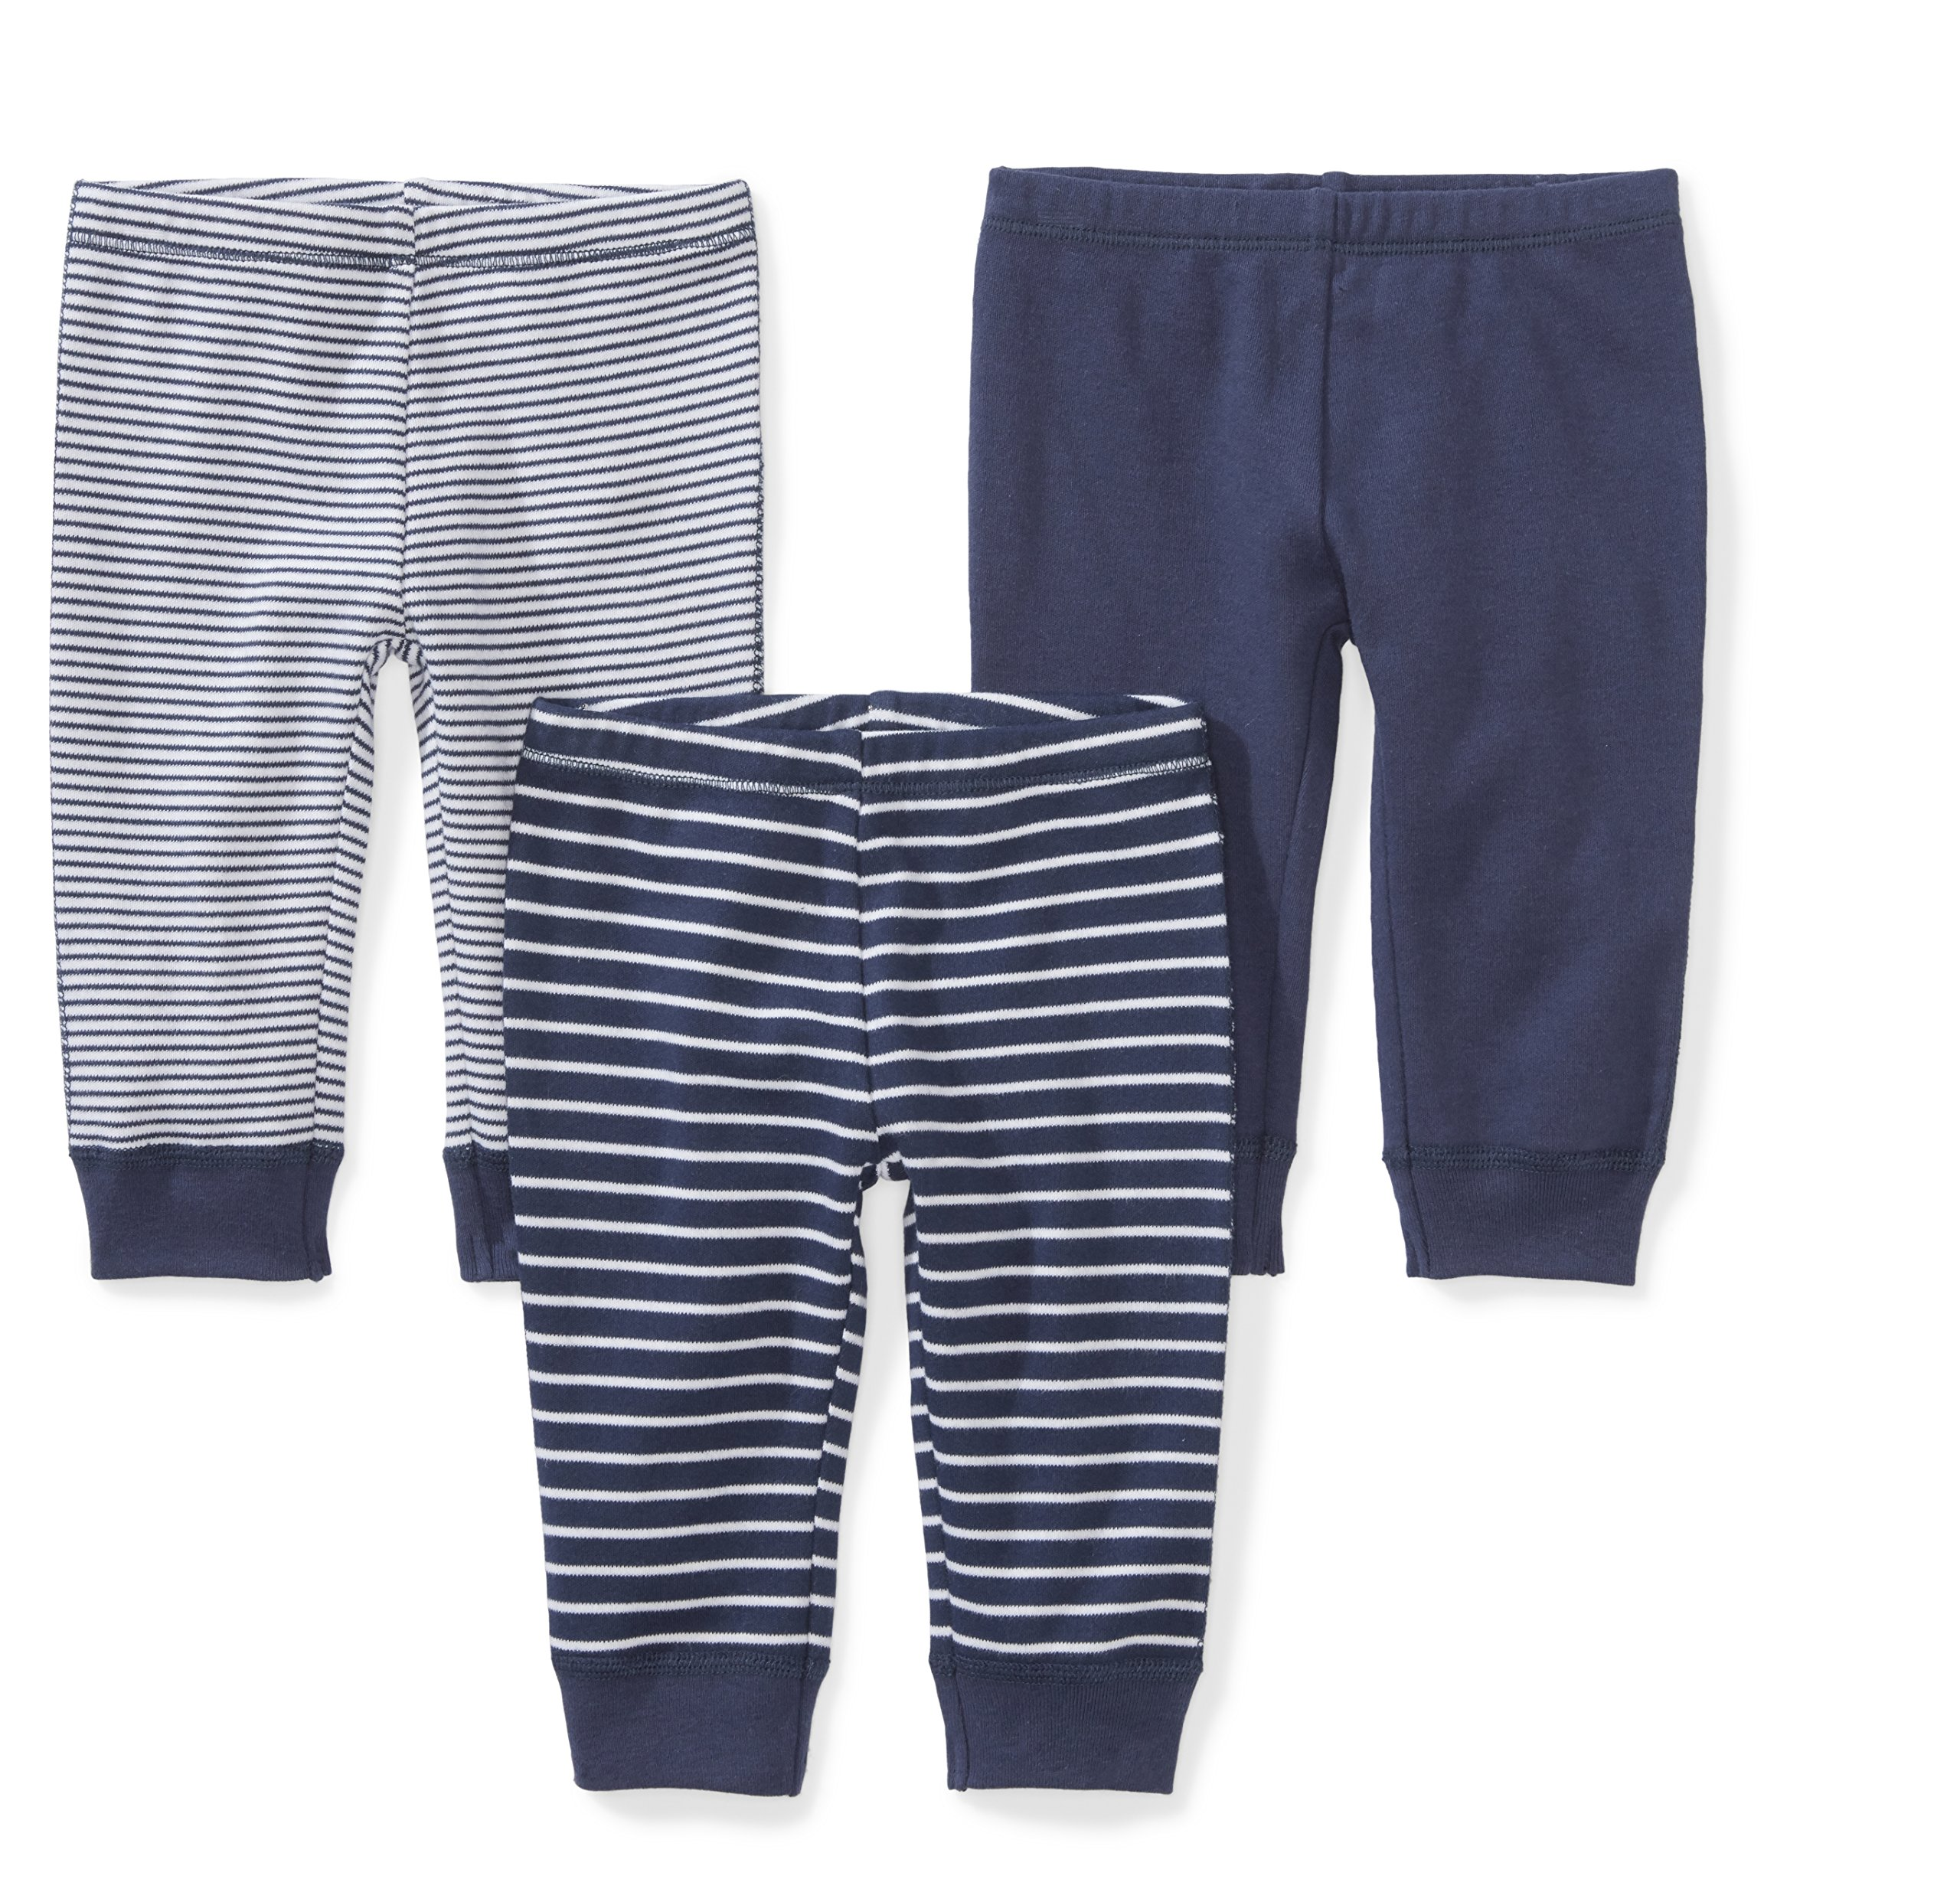 Moon and Back Baby Set of 3 Organic Pants, Navy Sea, 0-3 Months